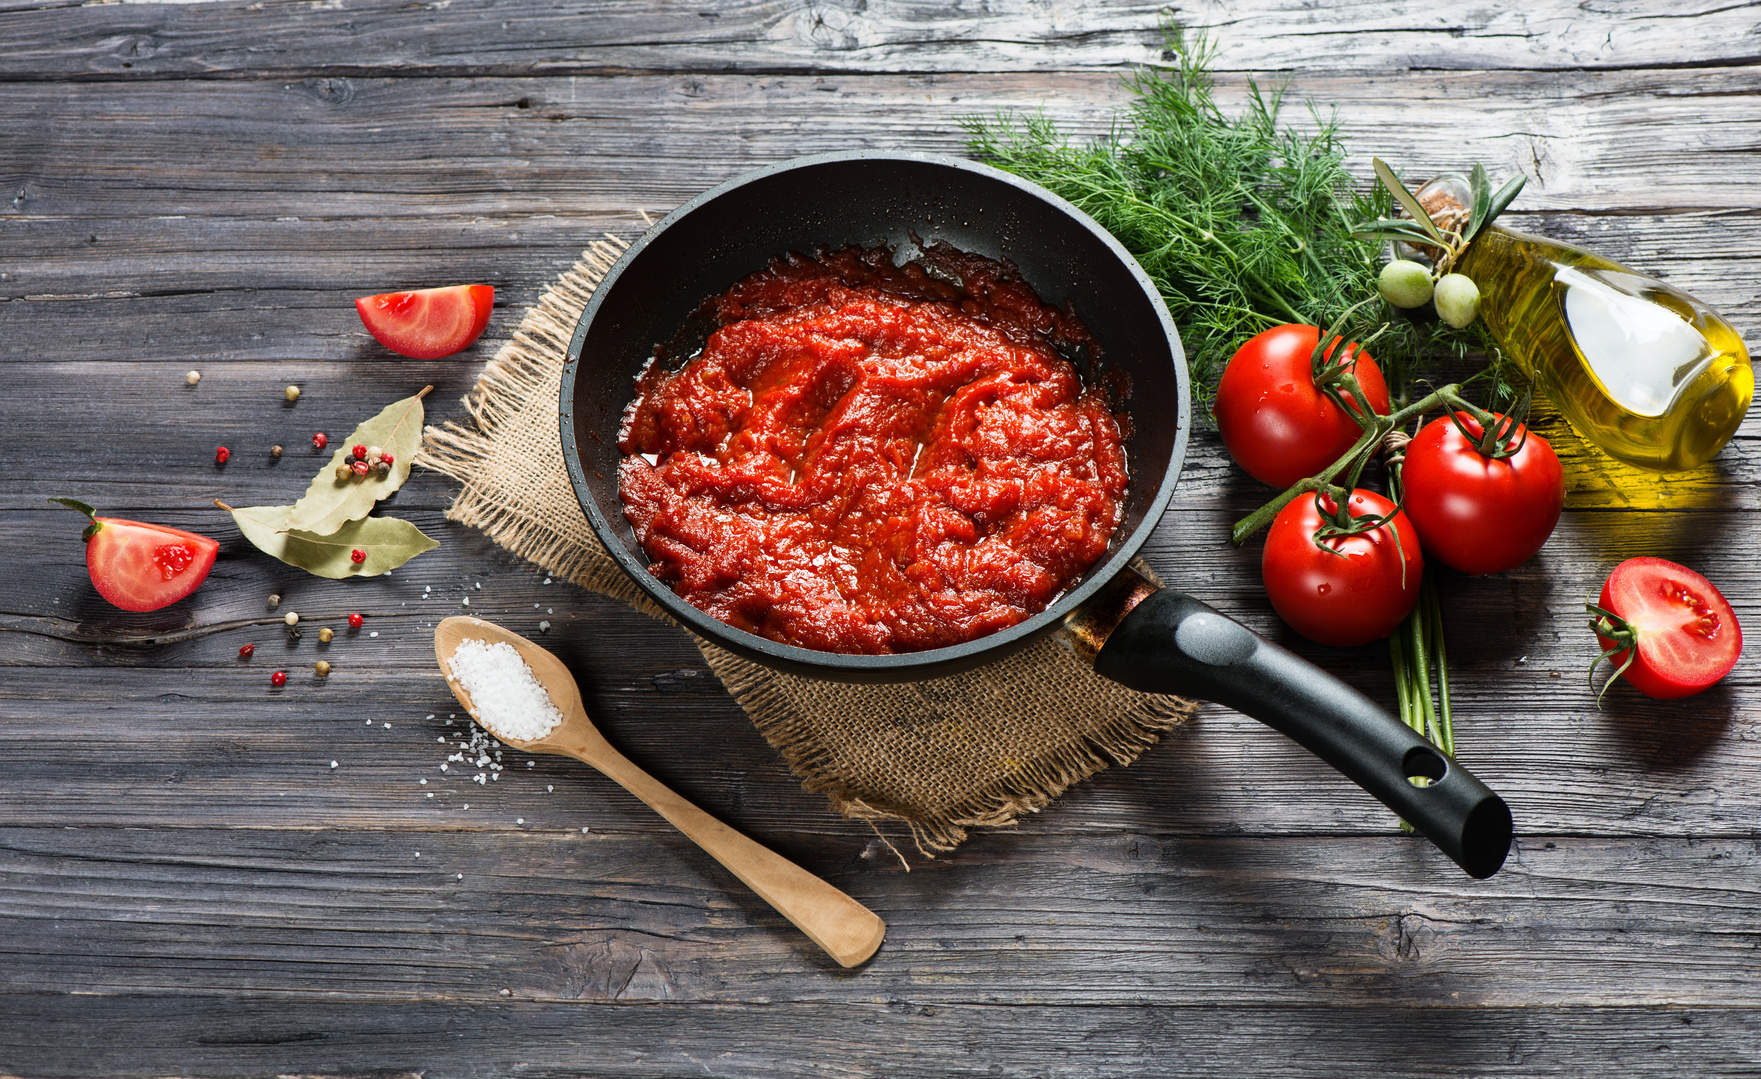 Tomato sauce in a pan and ingredients